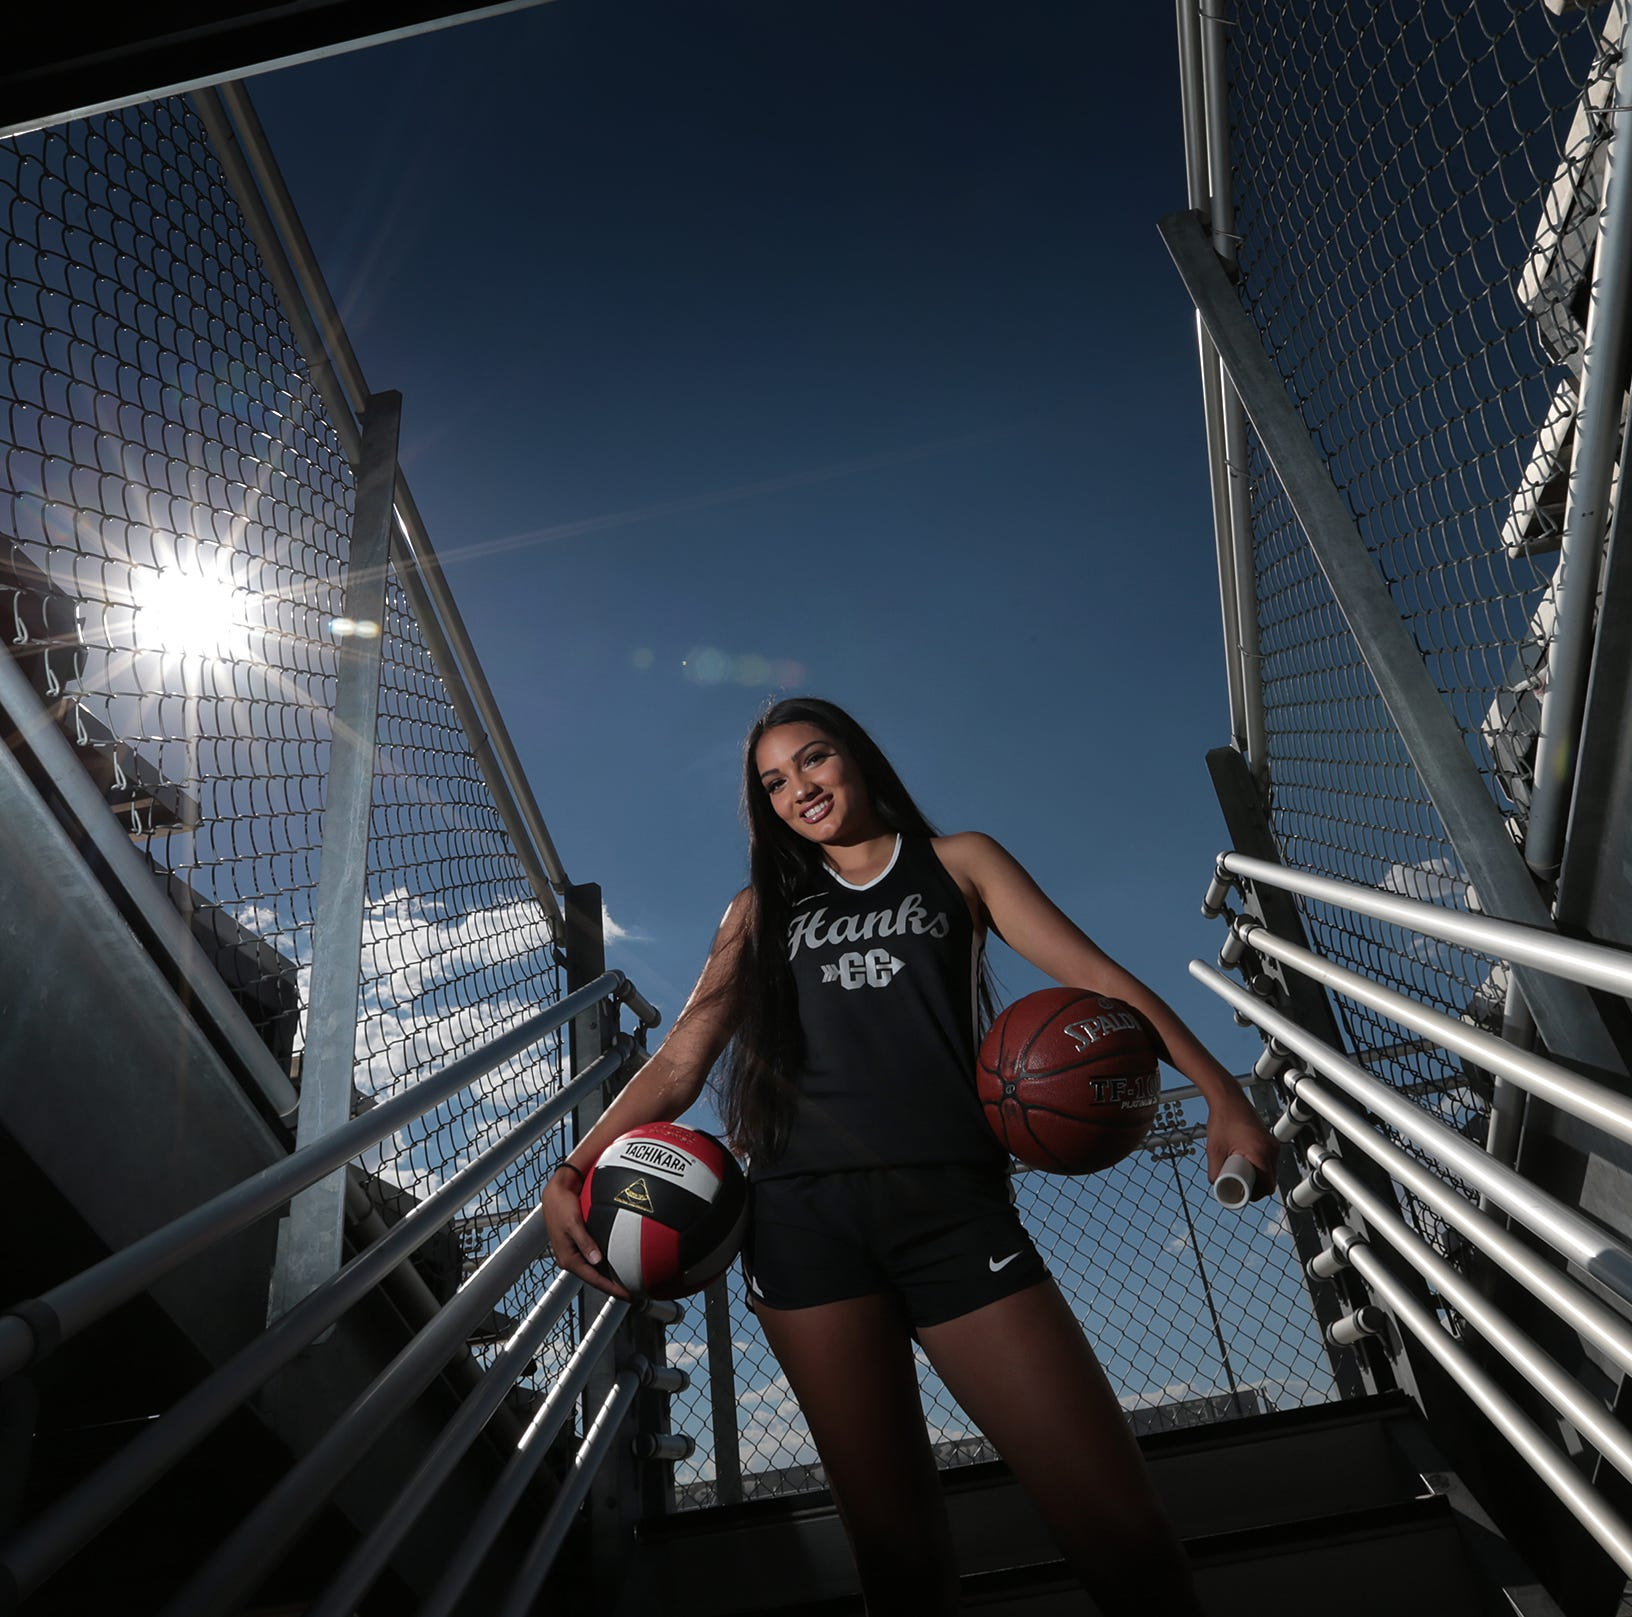 Hanks High School senior in 4 sports — volleyball, cross-country, basketball, track